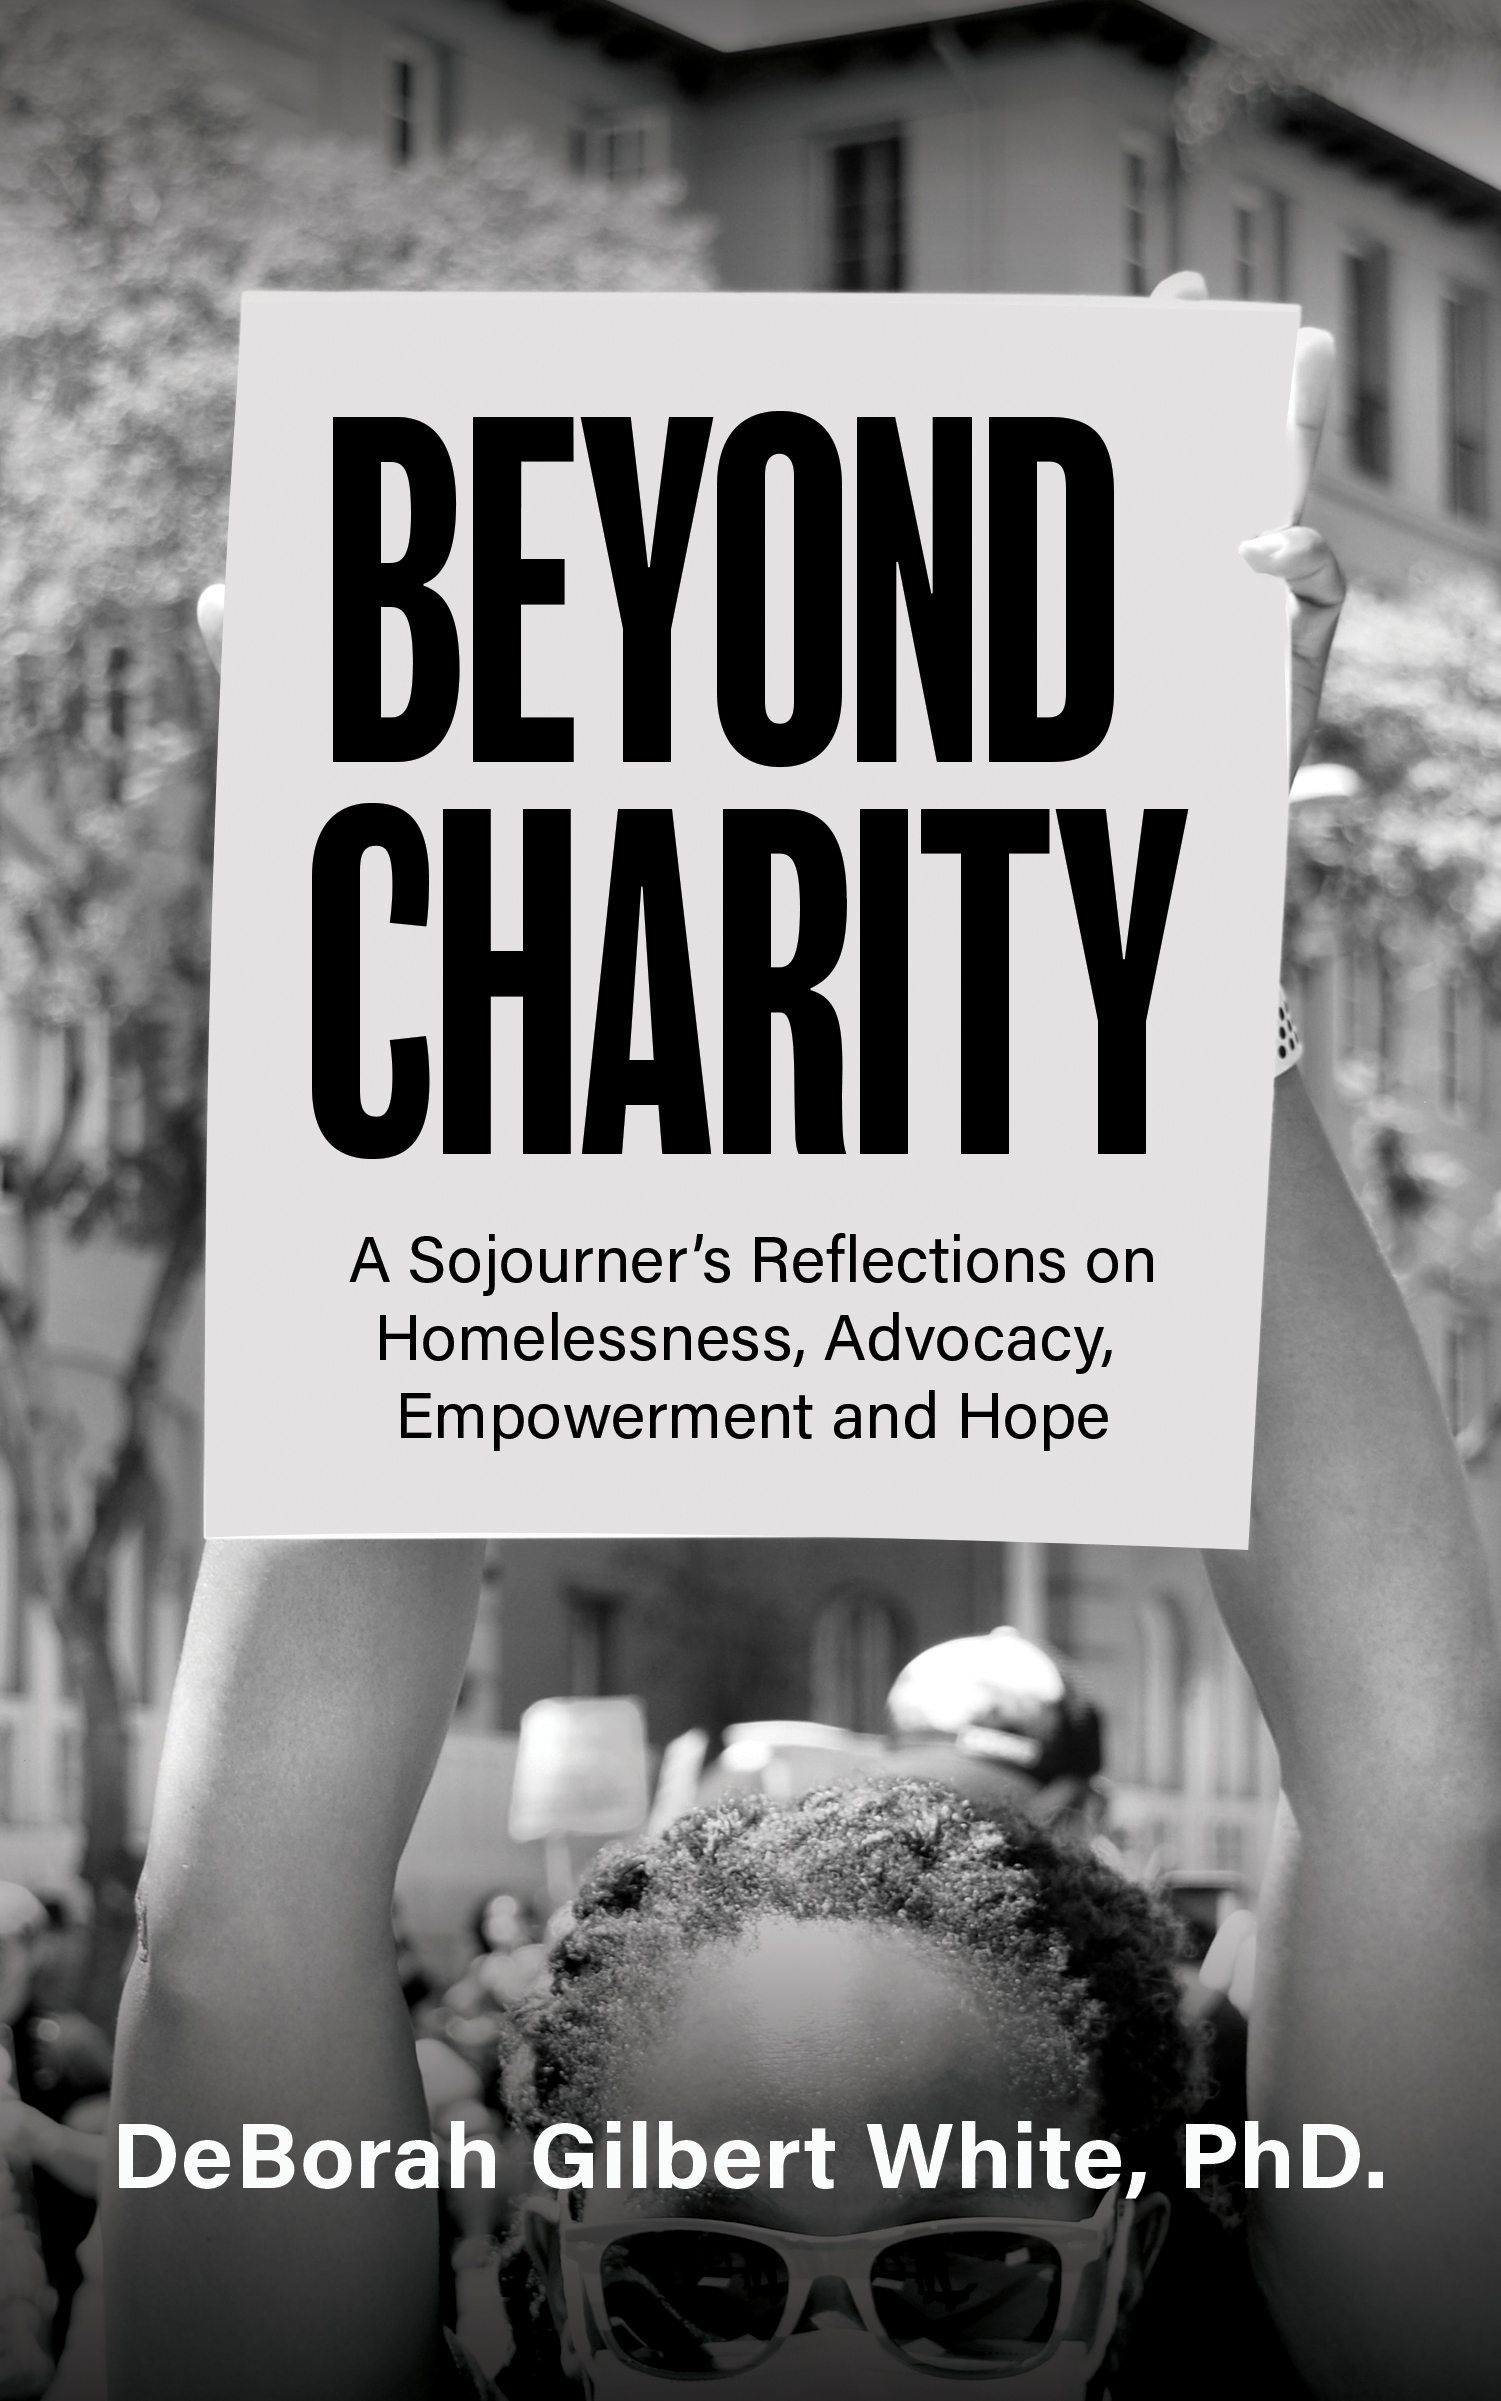 Beyond Charity: A Sojourner's Reflections on Homelessness, Advocacy, Empowerment and Hope, By DeBorah Gilbert White PhD.